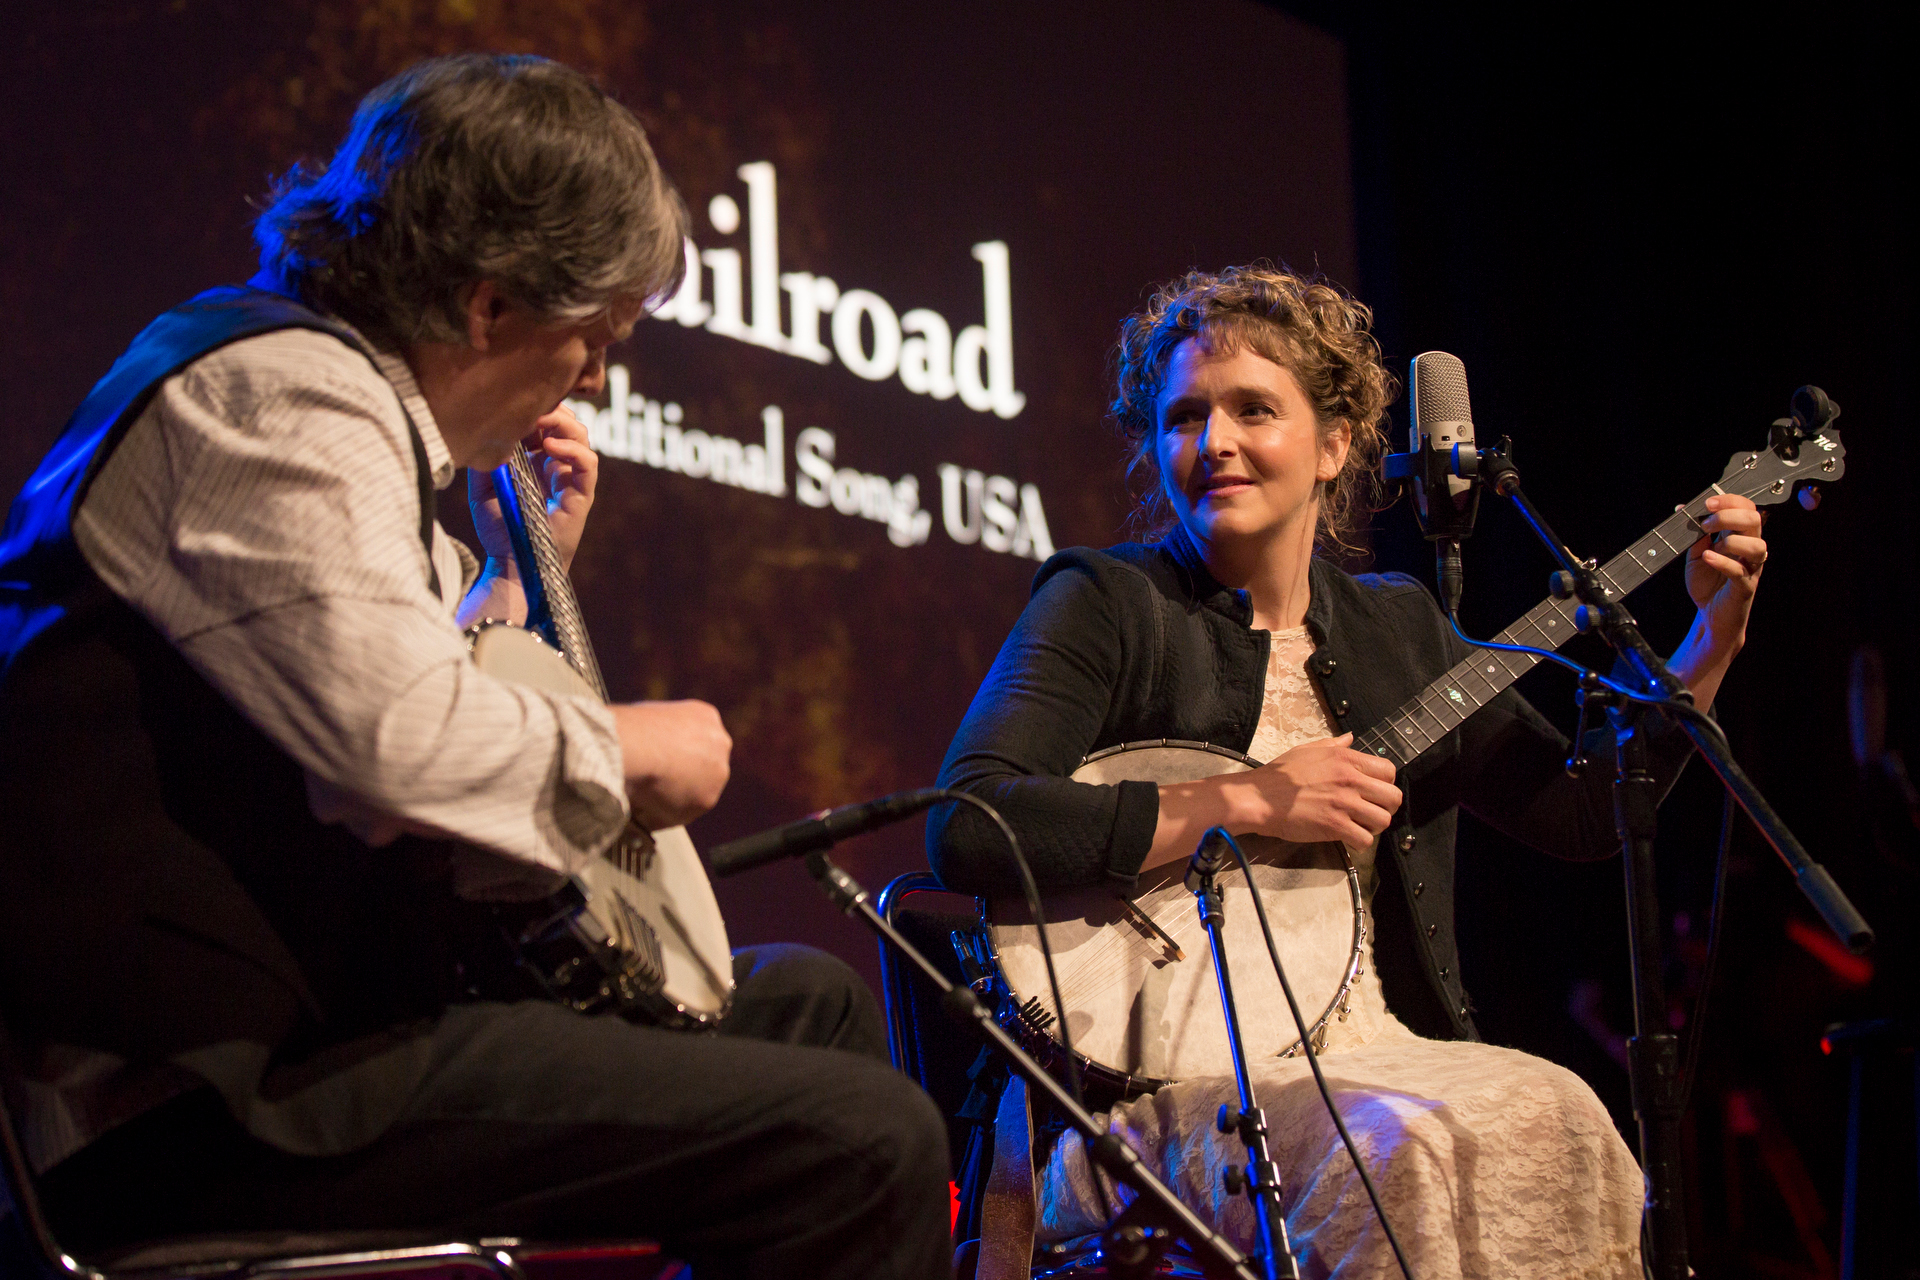 Béla Fleck and Abigail Washburn perform at TEDWomen2015 - Momentum, Session 3, May 28, 2015, Monterey Conference Center, Monterey, California, USA. Photo: Marla Aufmuth/TED